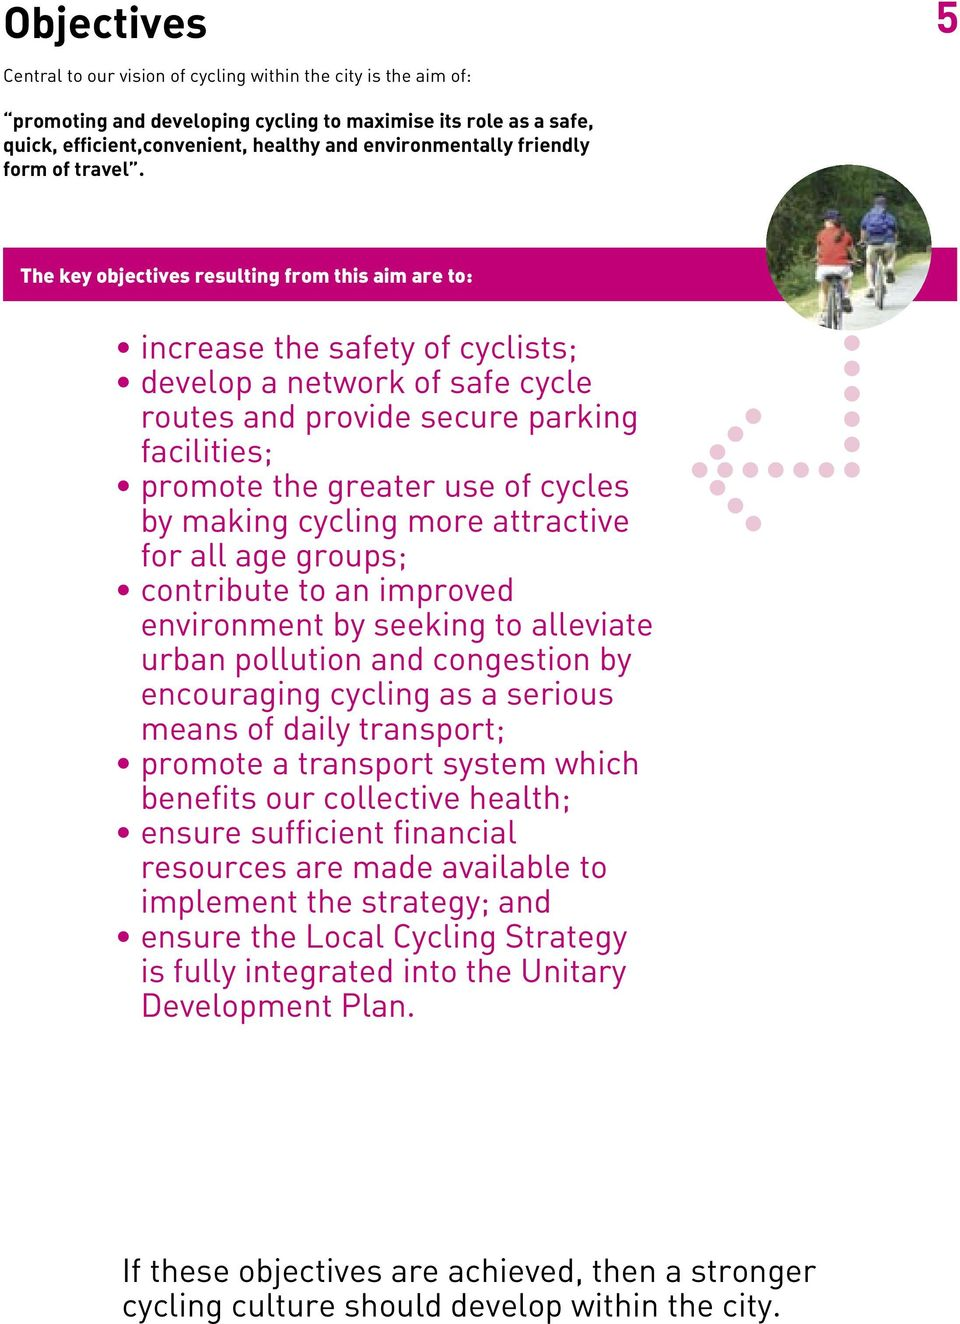 The key objectives resulting from this aim are to: increase the safety of cyclists; develop a network of safe cycle routes and provide secure parking facilities; promote the greater use of cycles by